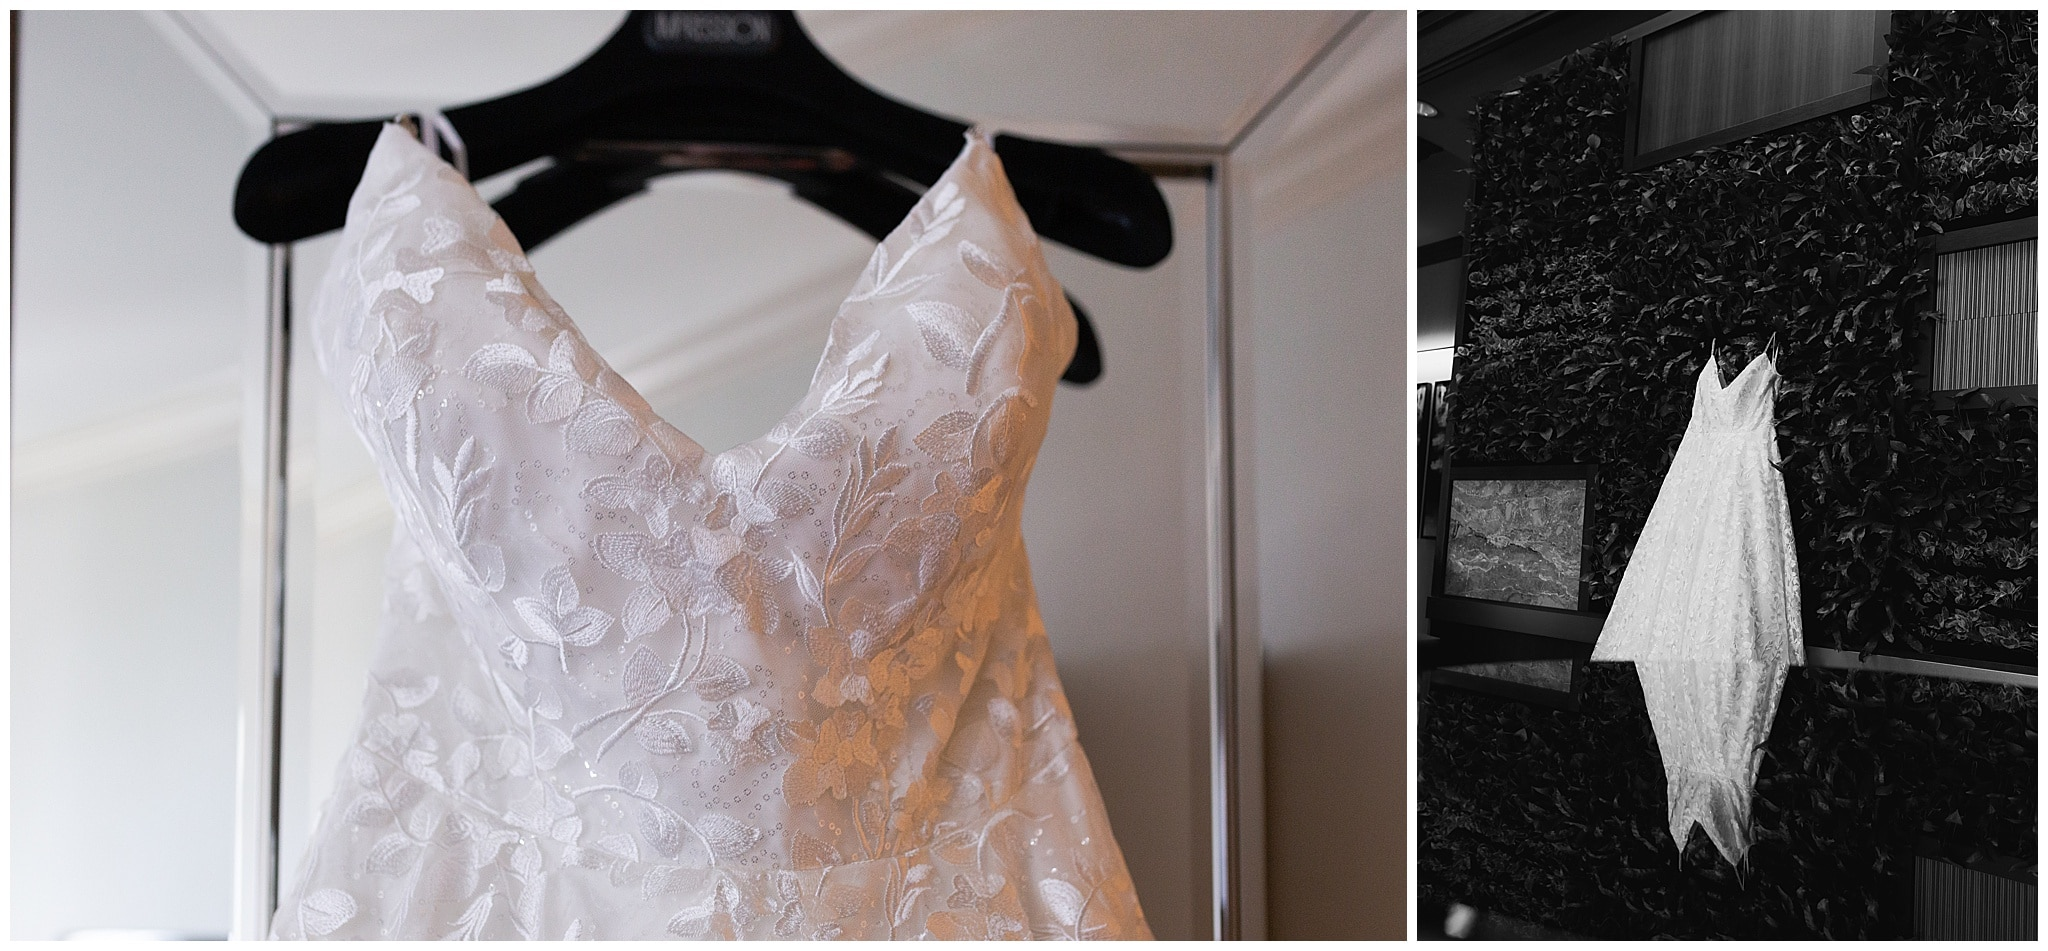 wedding gown on wedding day at The Westin in downtown Houston, Texas by Swish and Click Photography